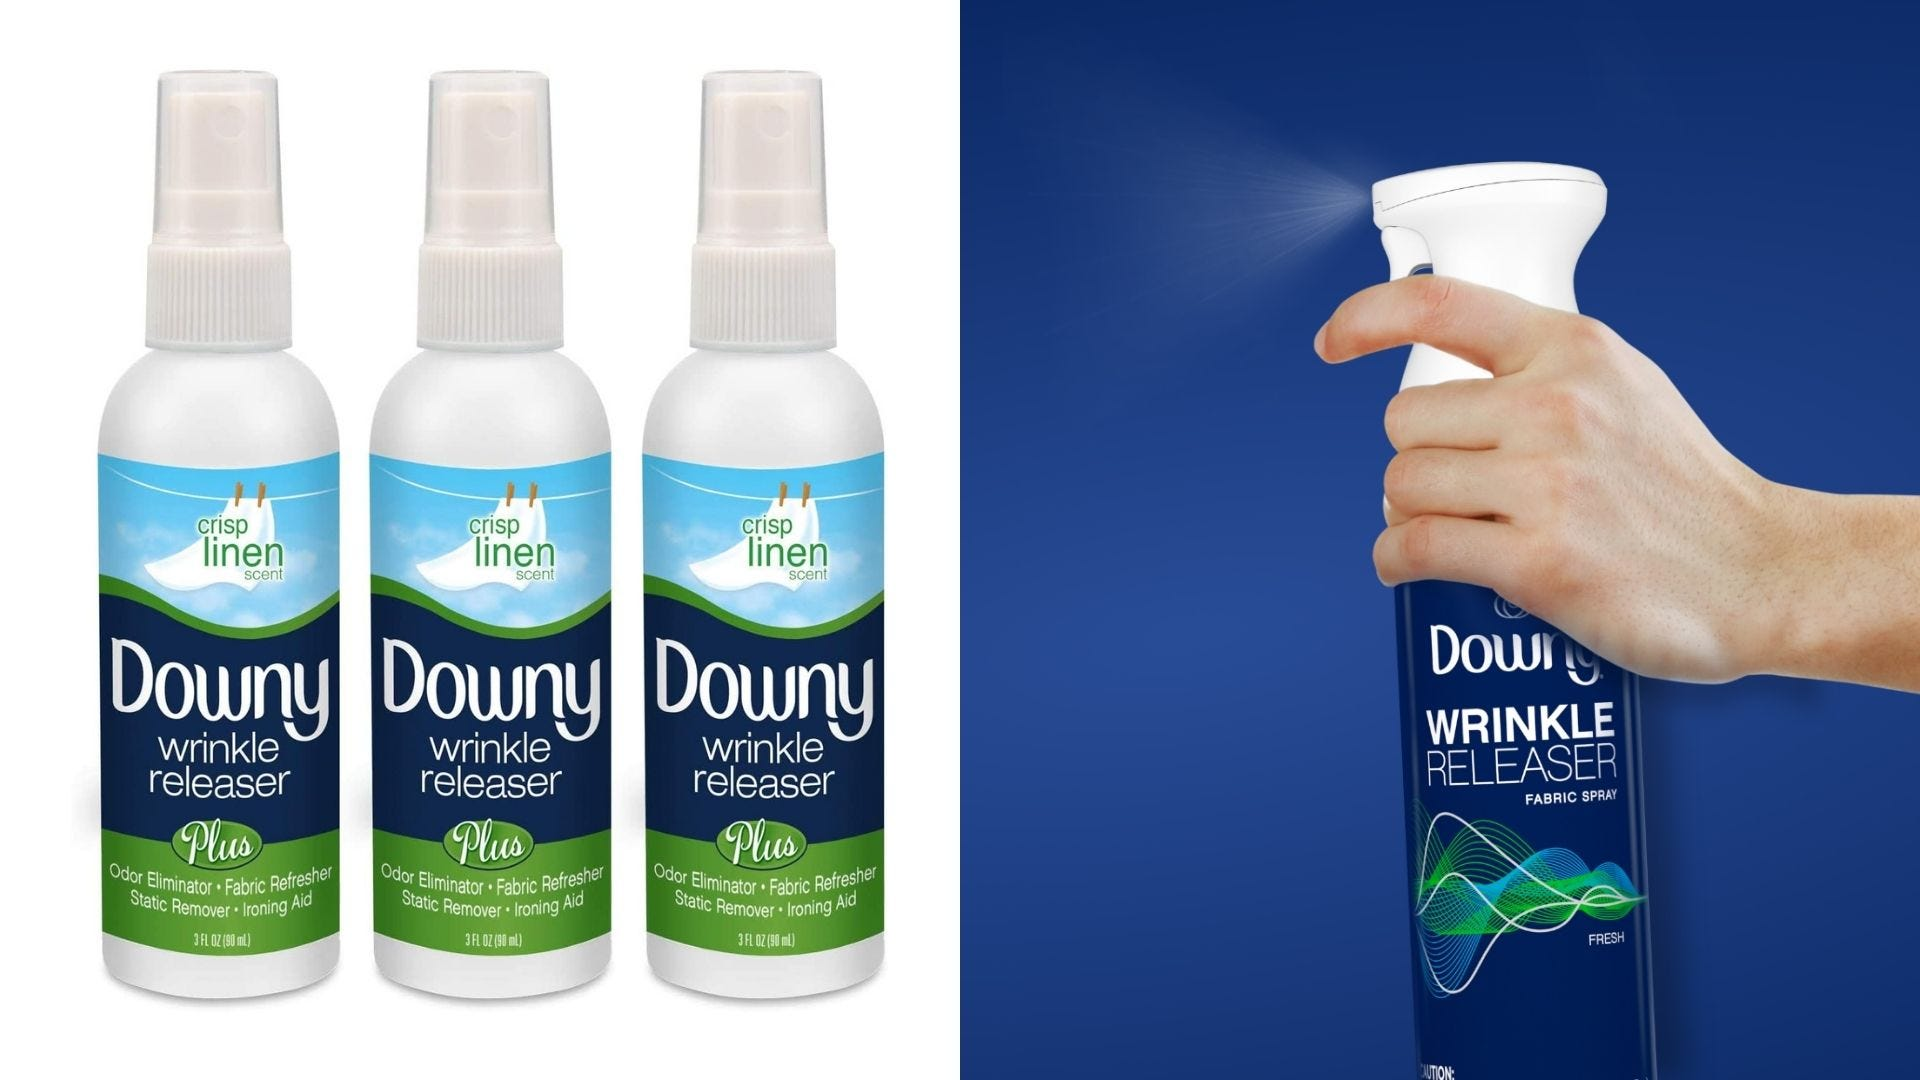 Three bottles of Downy wrinkle release spray and someone sprays a large bottle of it